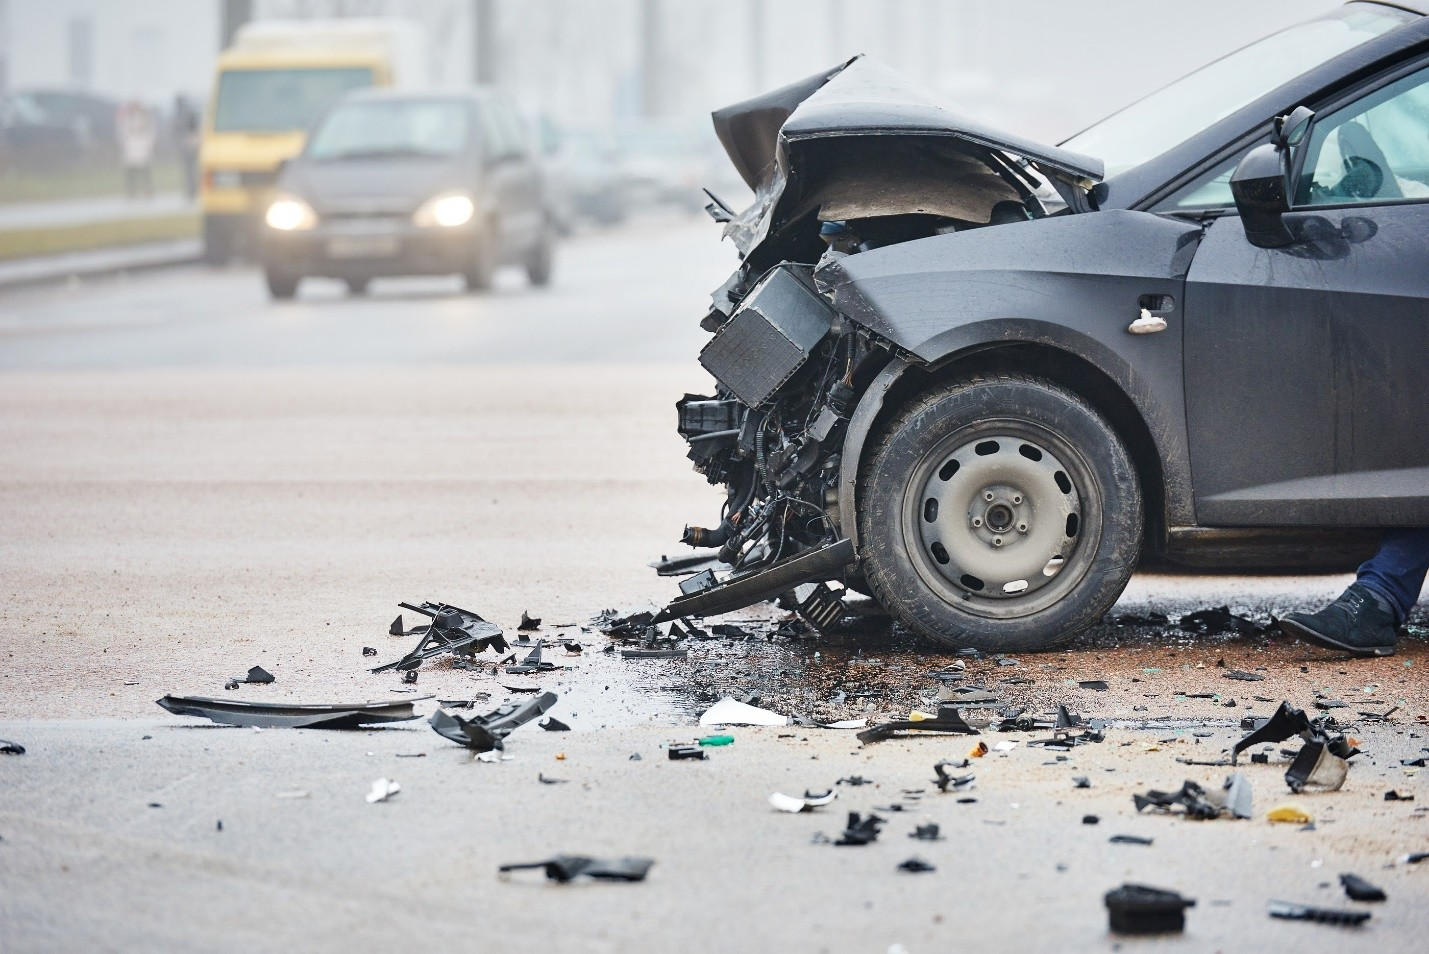 car accident injuries queens ny - How to Sue for a Concussion from a Car Accident in New York City